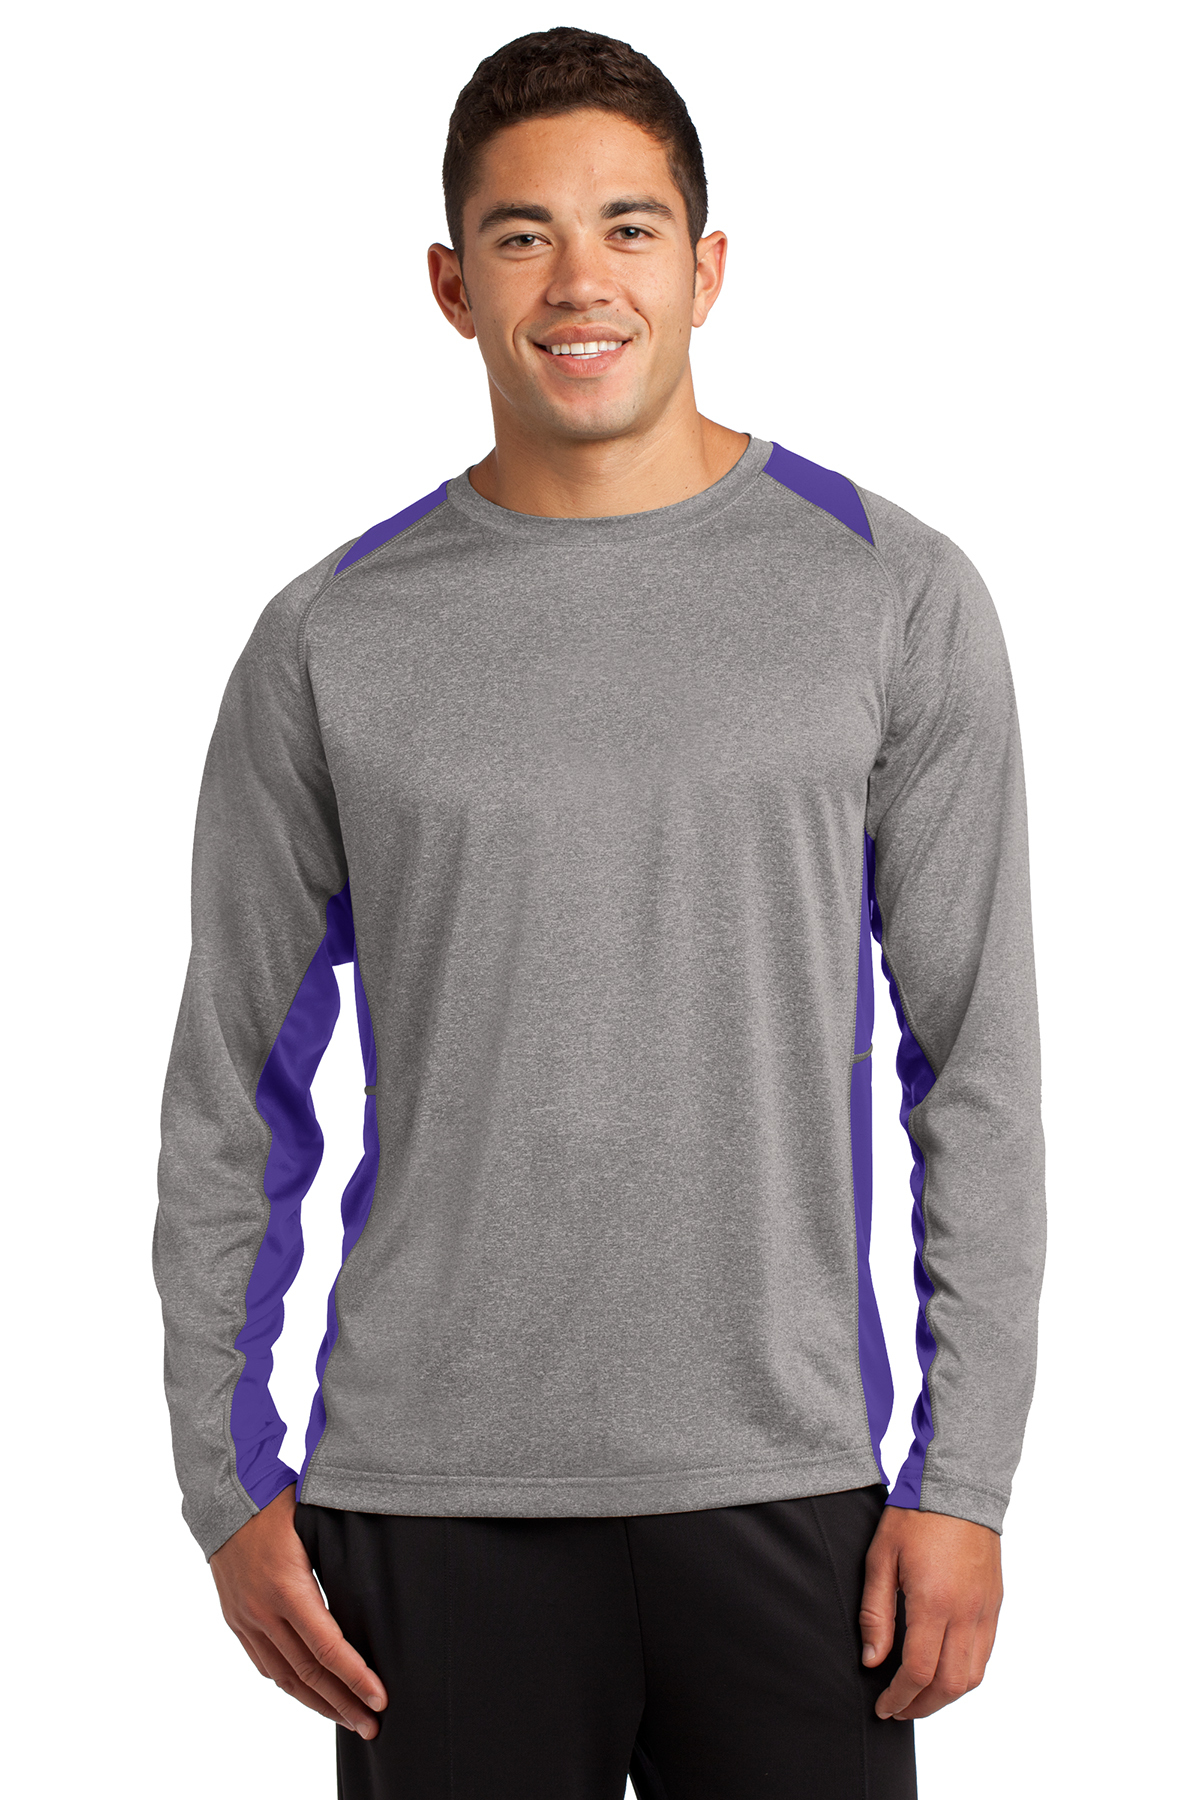 YST361 XL Clementine Sport-Tek Tee Vintage Heather//Purple